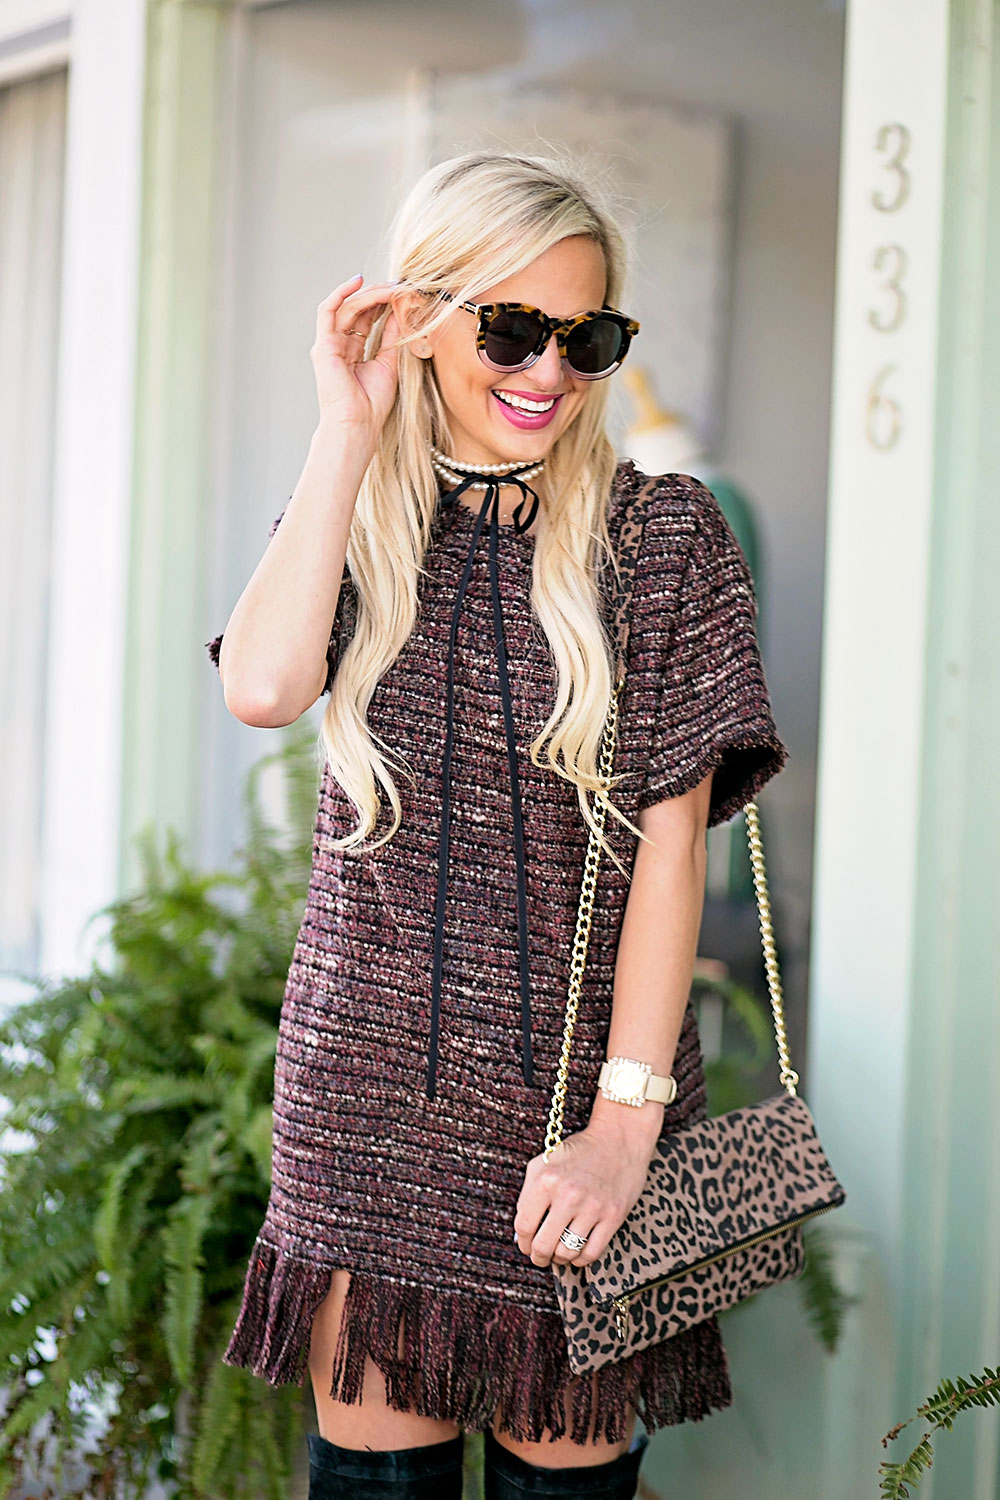 vandi-fair-blog-lauren-vandiver-dallas-texas-southern-fashion-blogger-astr-margo-fringe-shift-hem-dress-kelly-wynne-flirty-little-foldover-catwalk-leopard-crossbody-bag-1